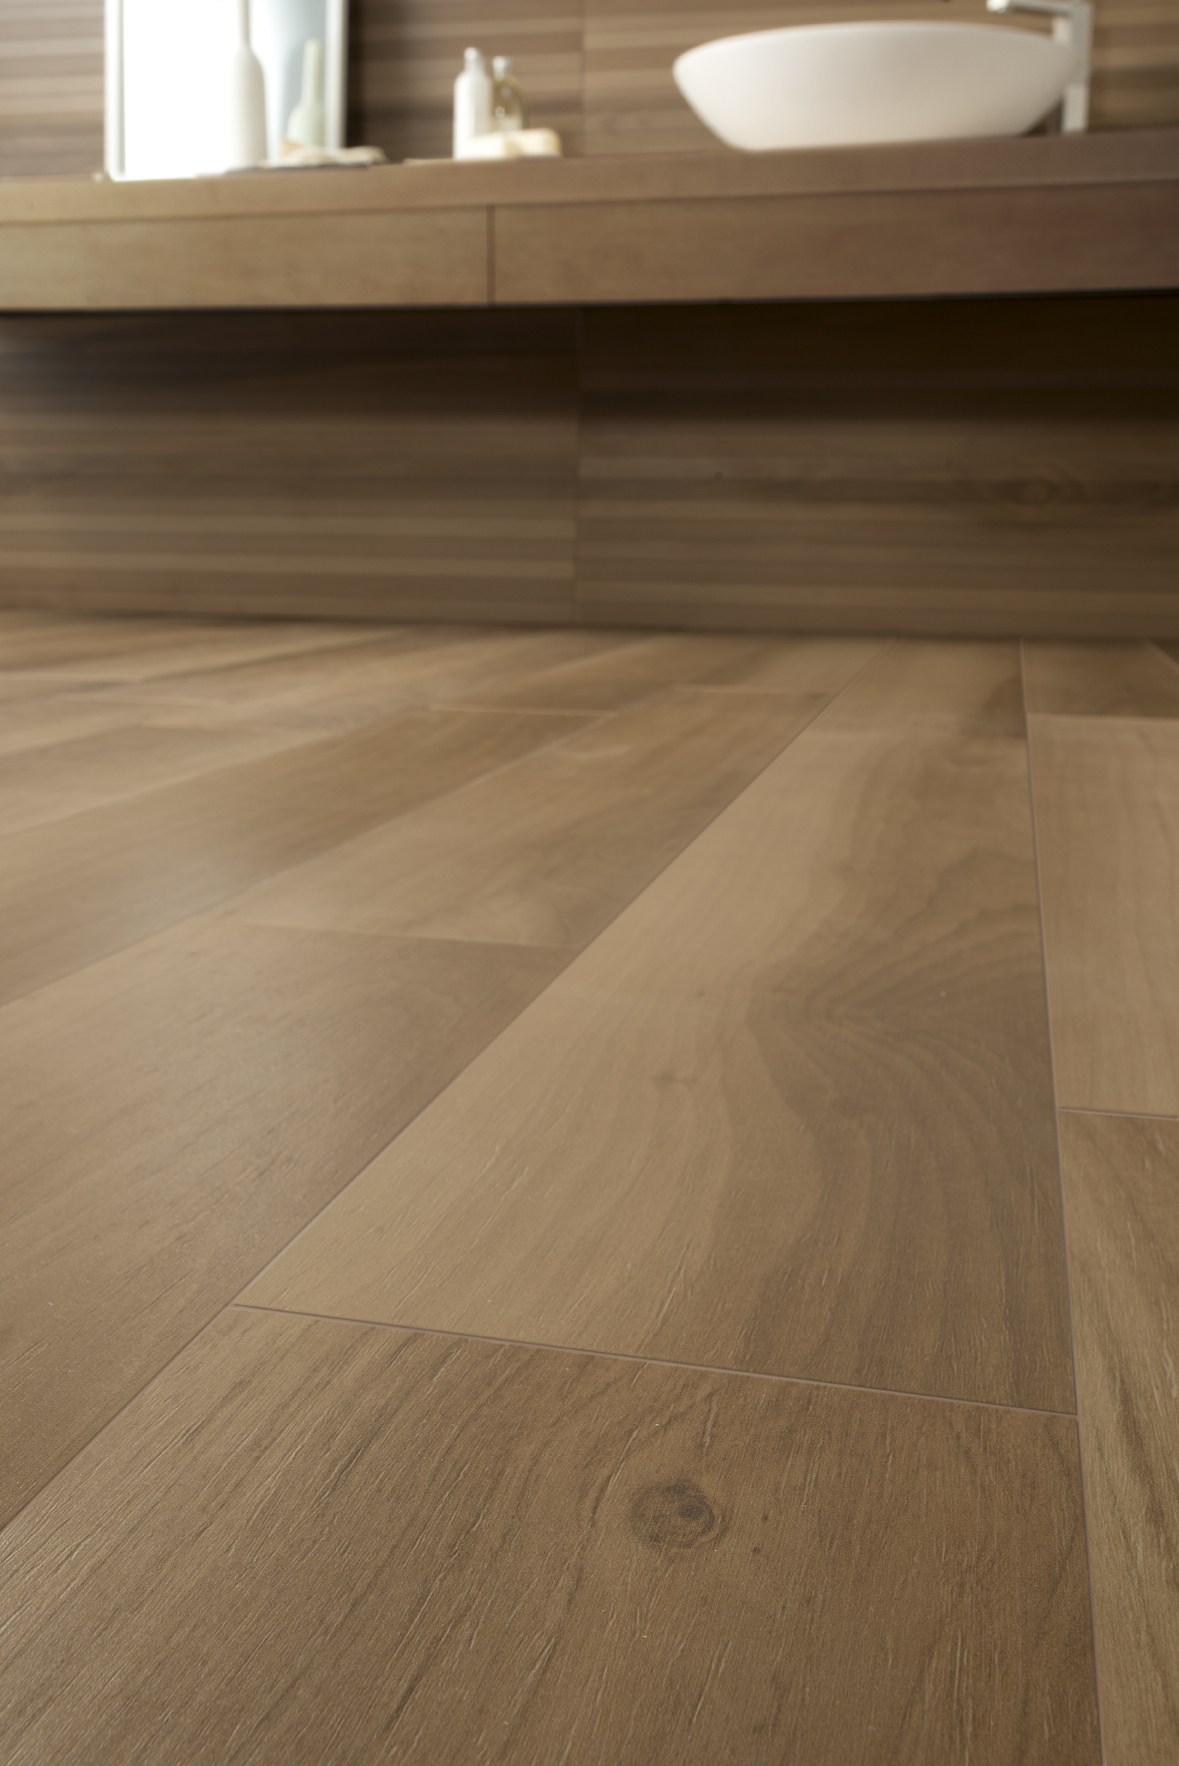 Wall Floor Tiles With Wood Effect LIFE WALNUT By Ceramiche Caesar